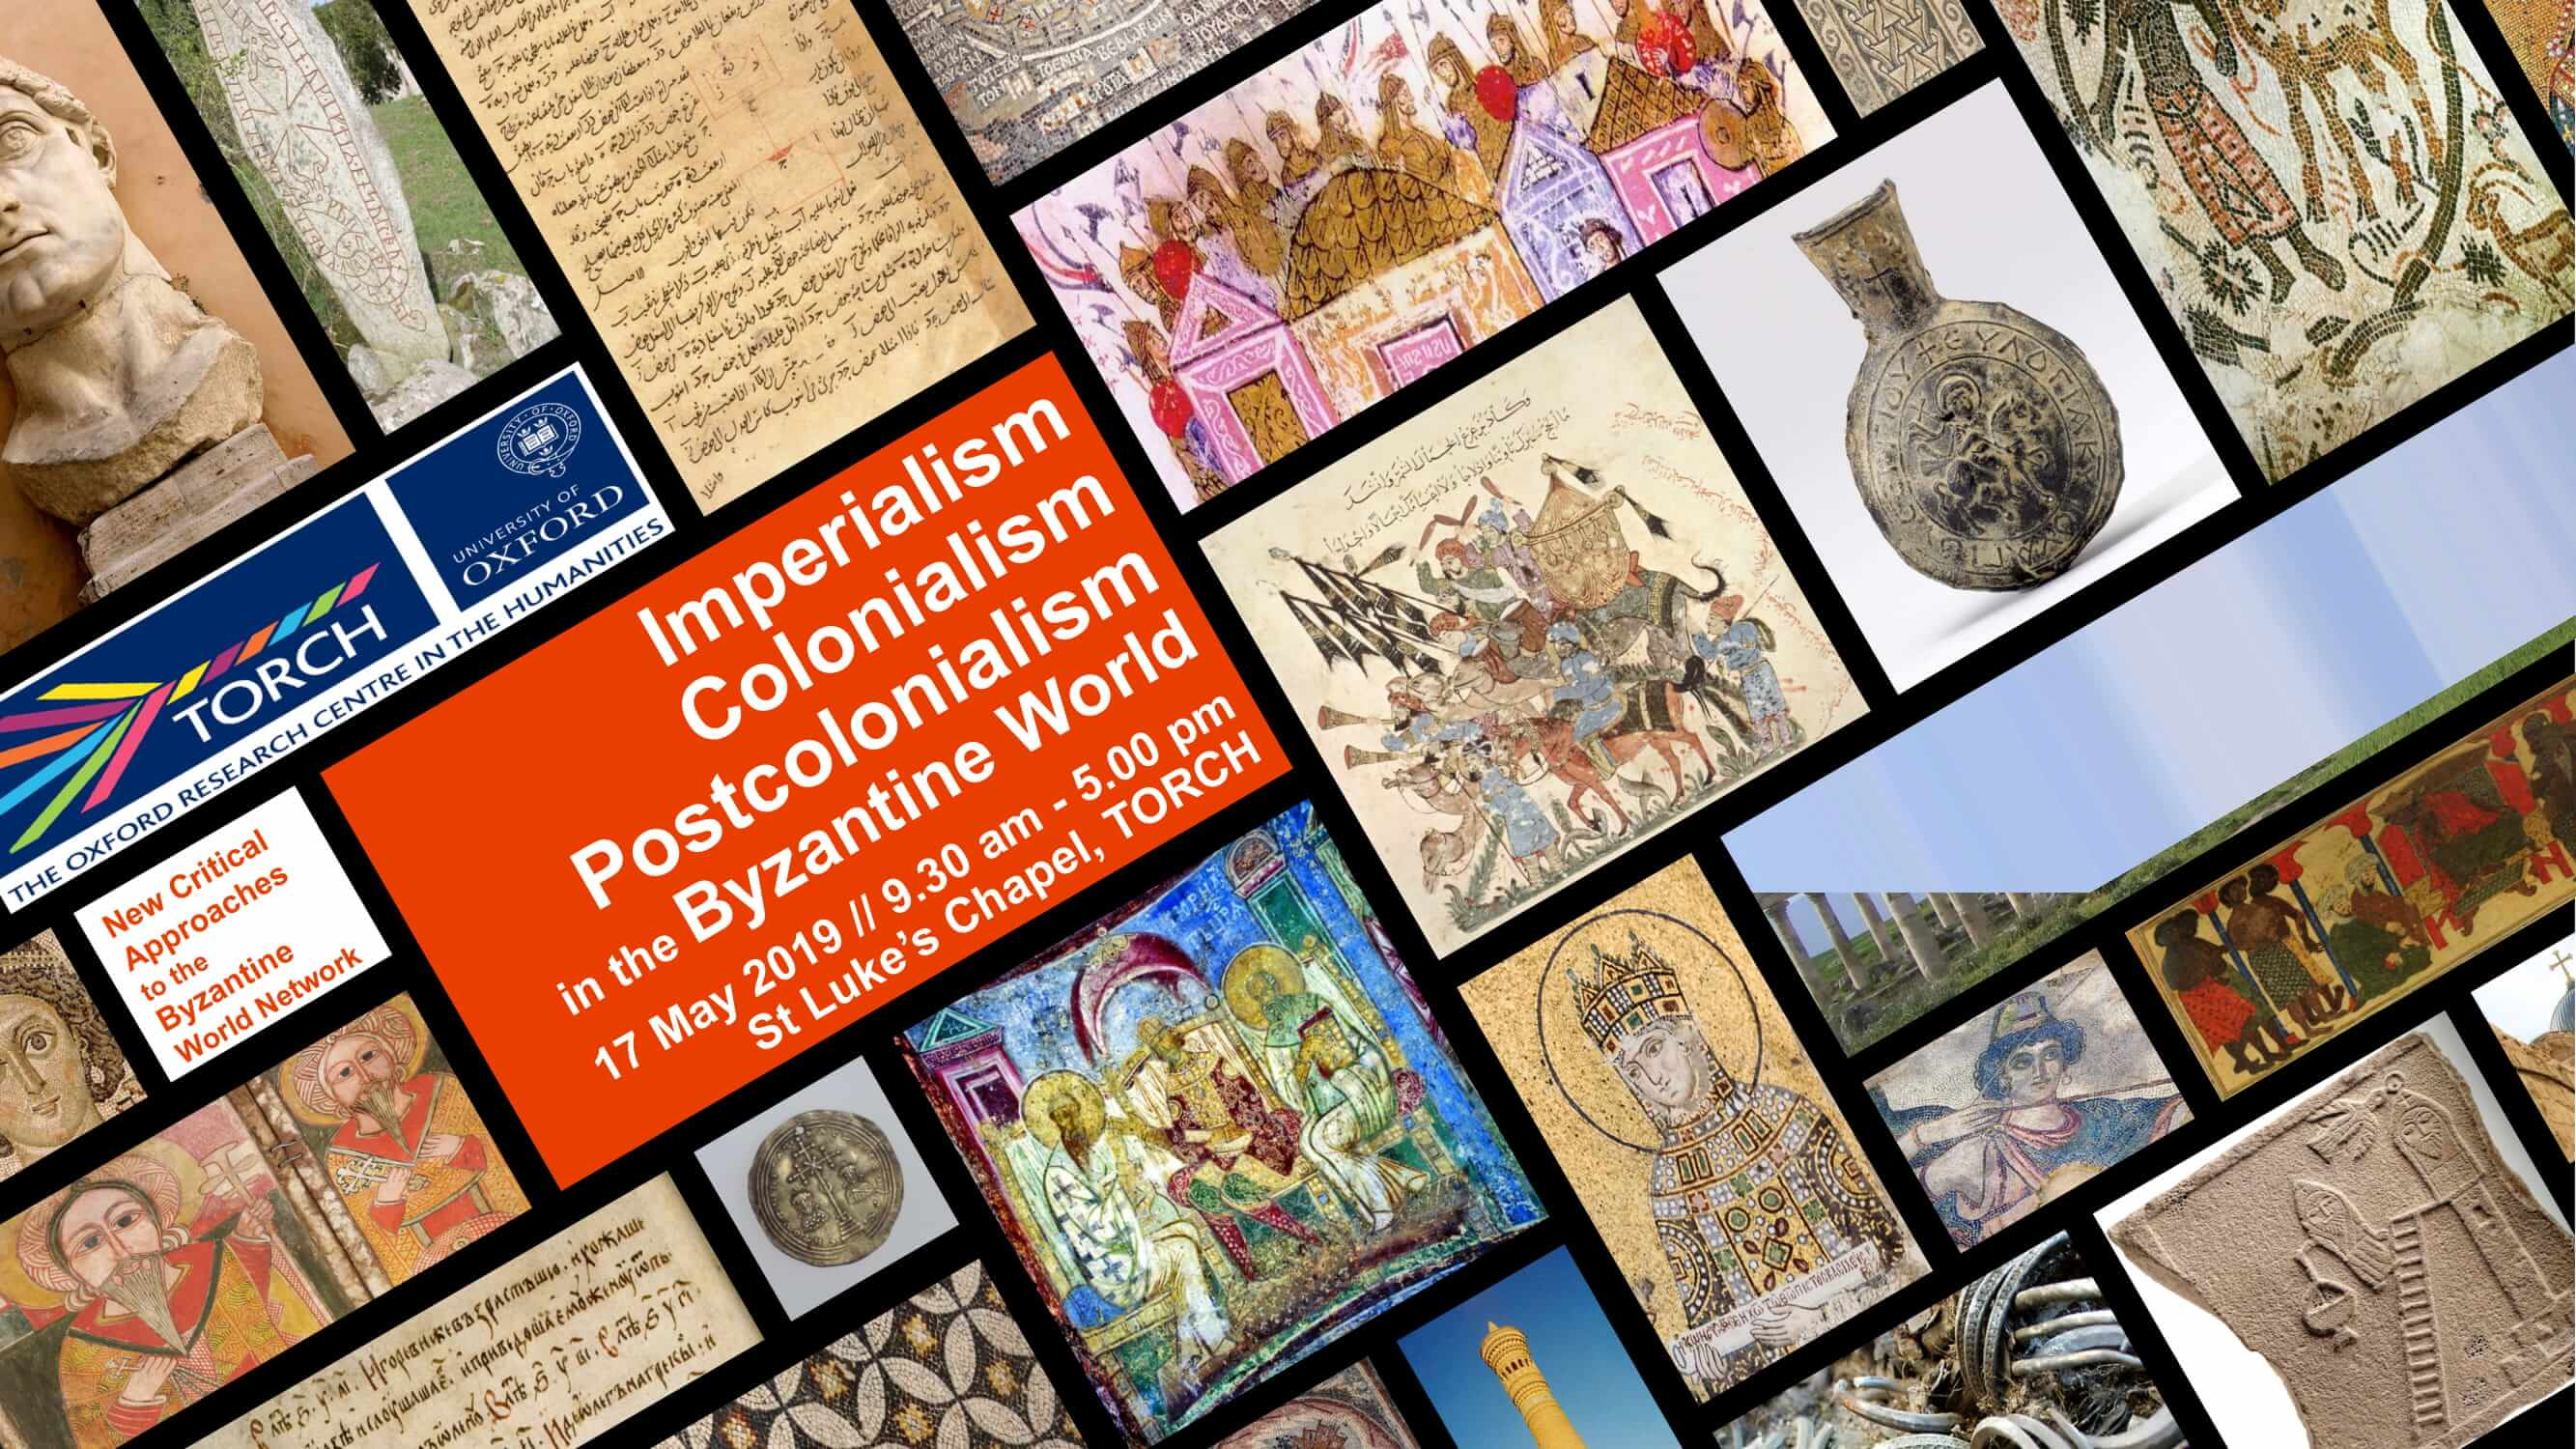 Imperialism, Colonialism and Postcolonialism in the Byzantine World